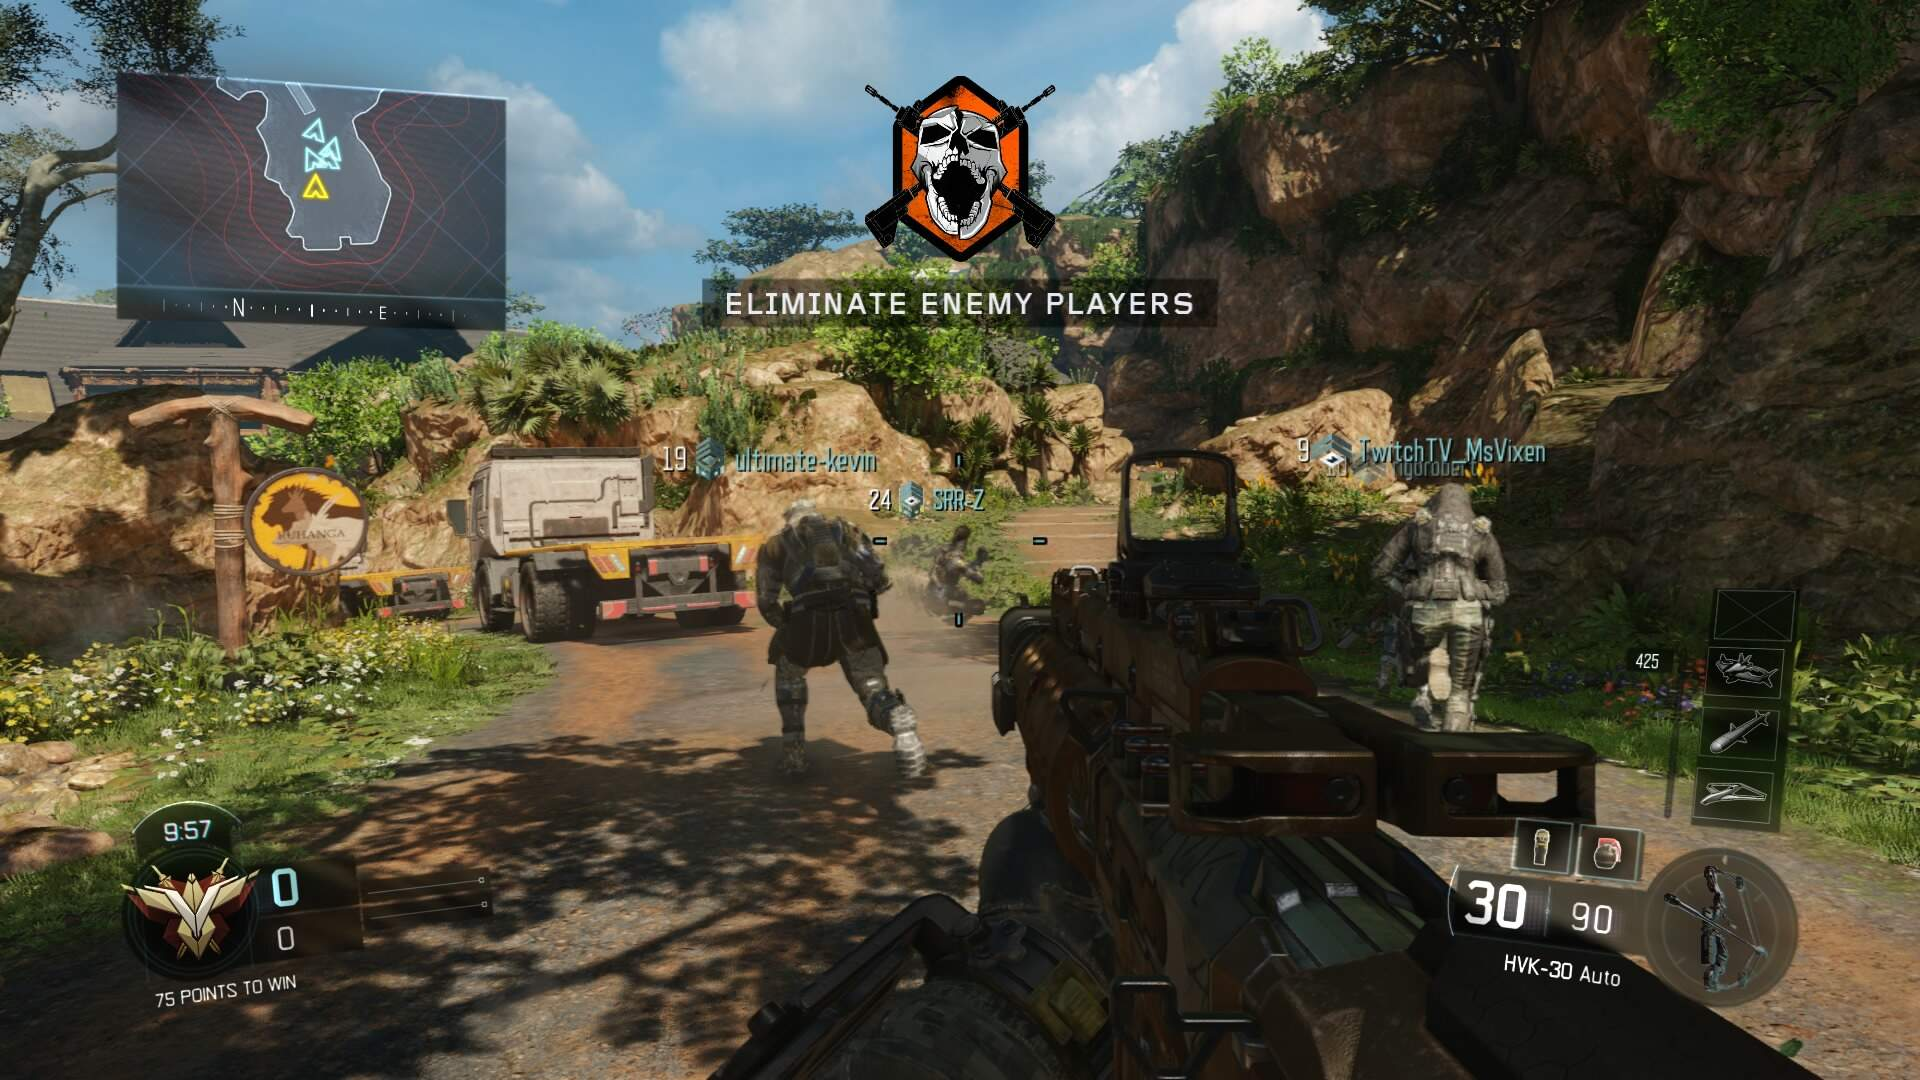 Call of Duty: Black Ops III PC to Support Mapping and Modding Tools